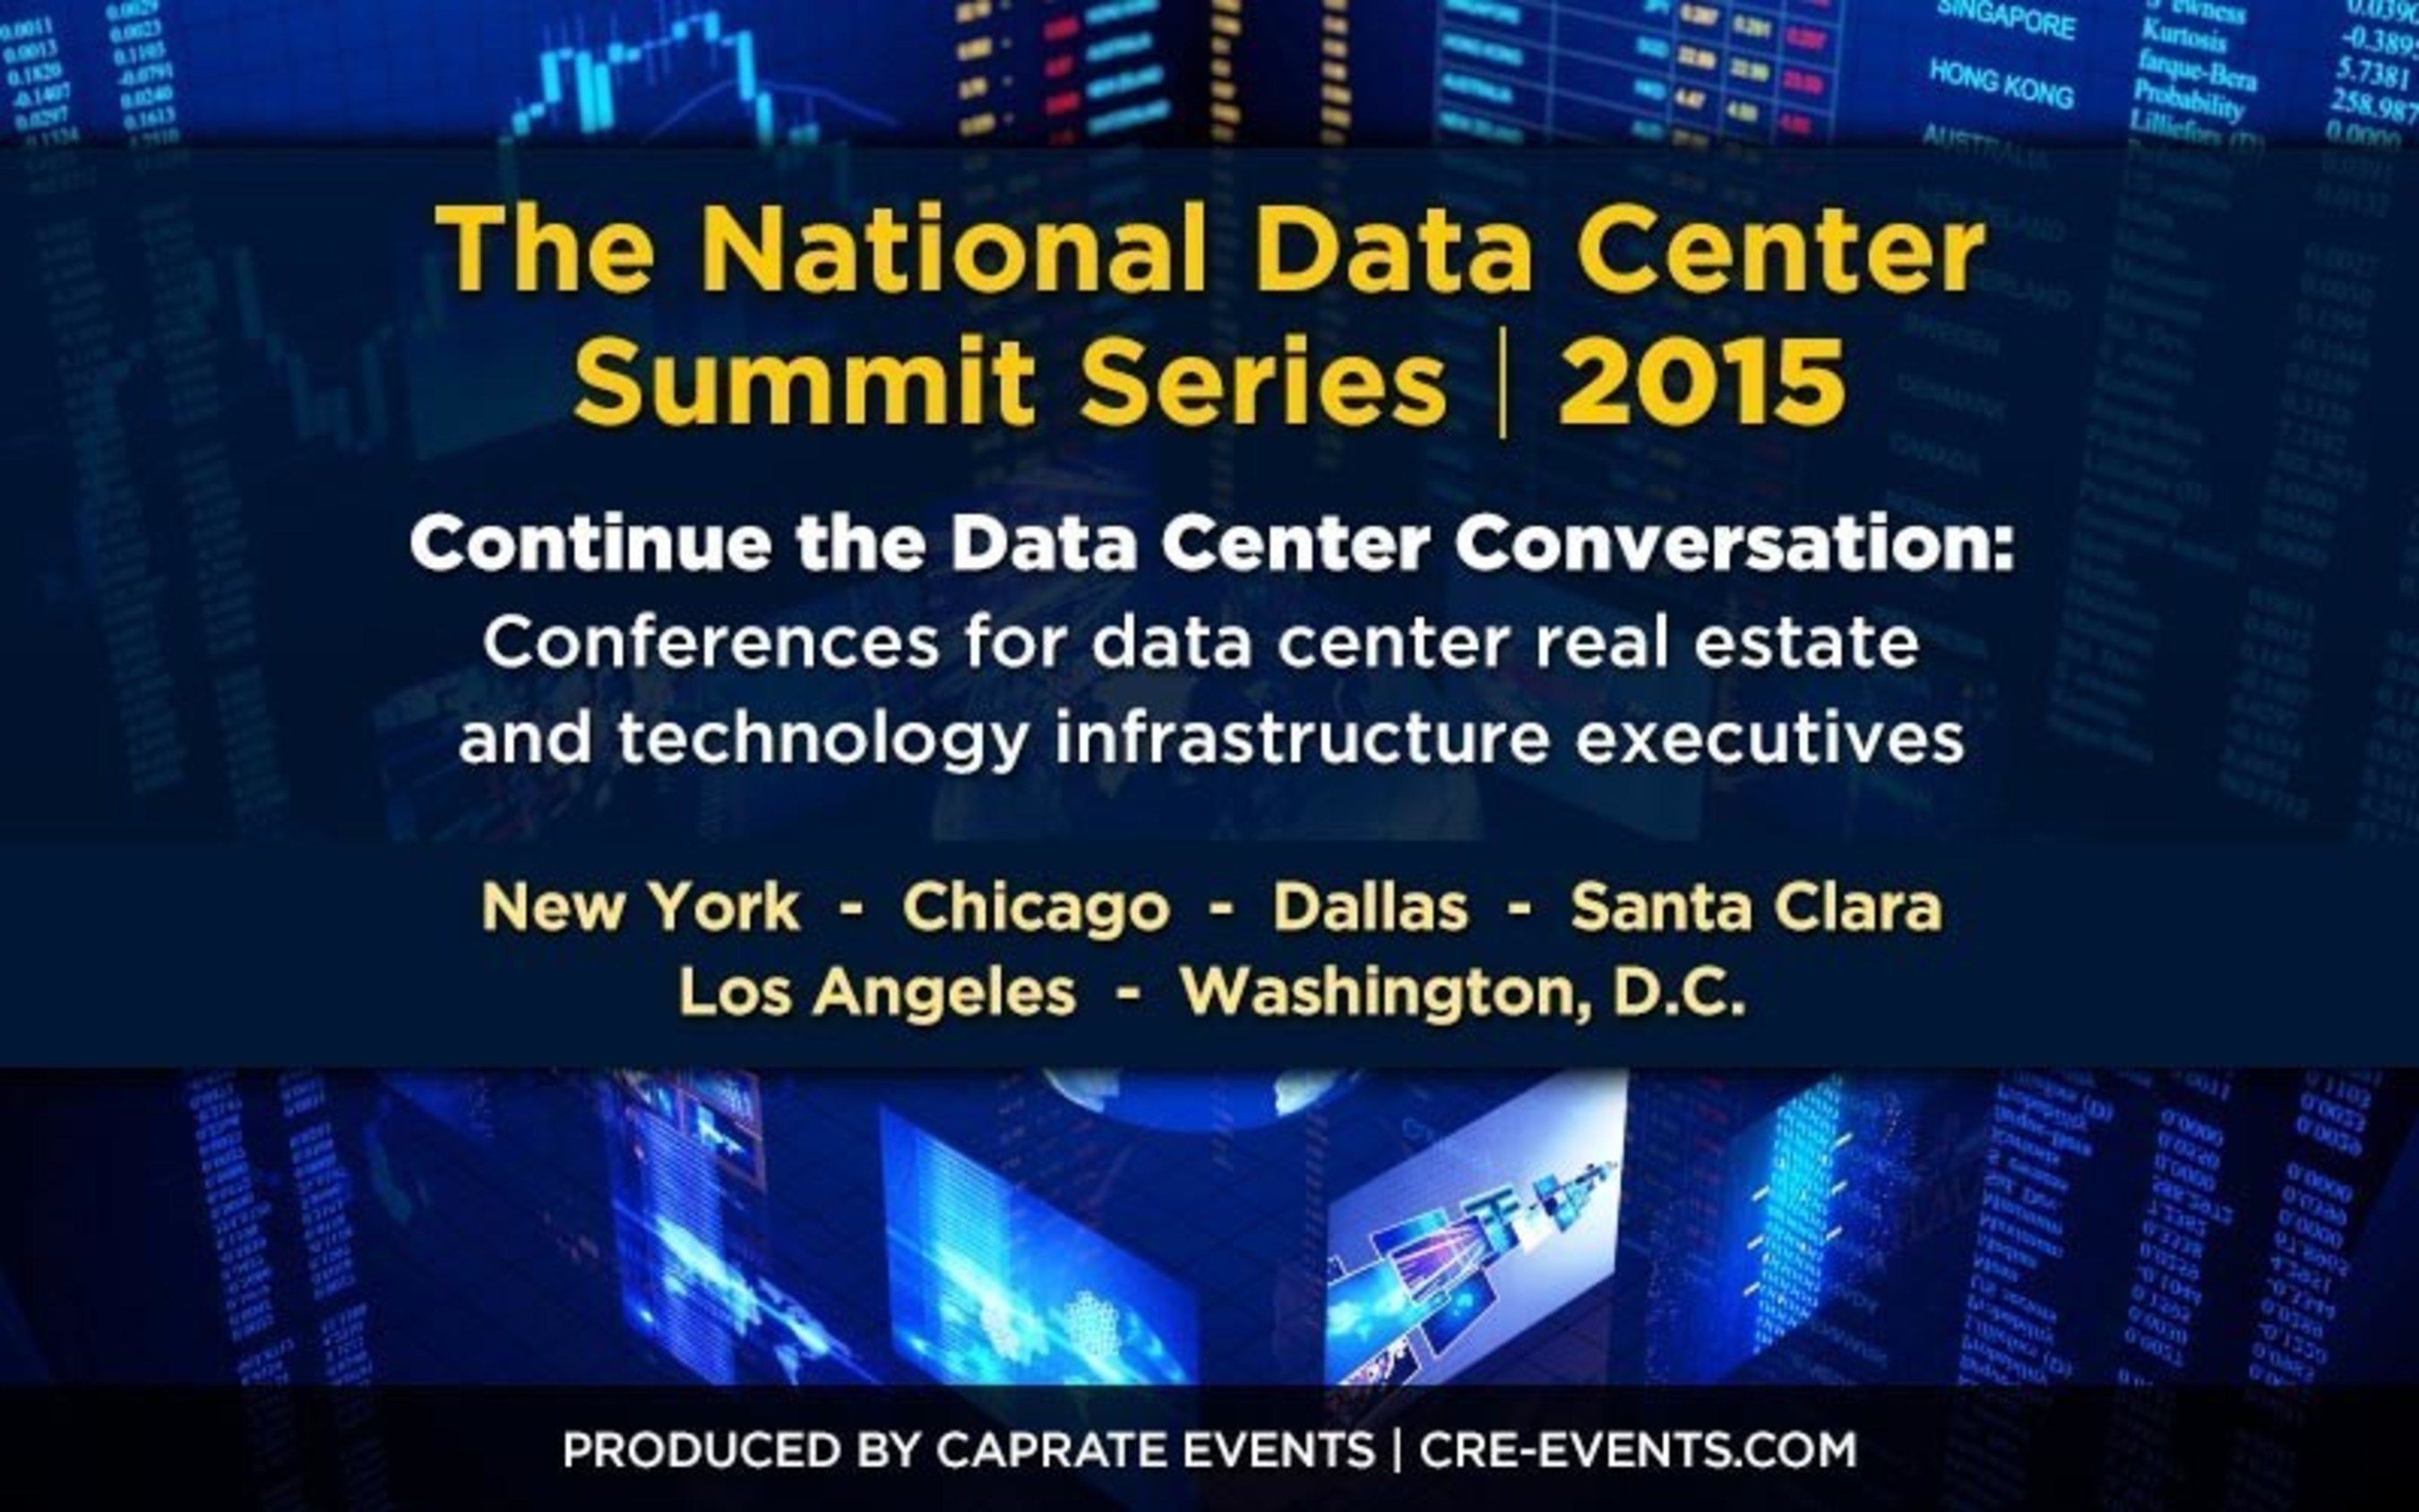 Data Center Conference -- Look Who's Speaking & Attending Northern California Data Center Summit on February 23-25